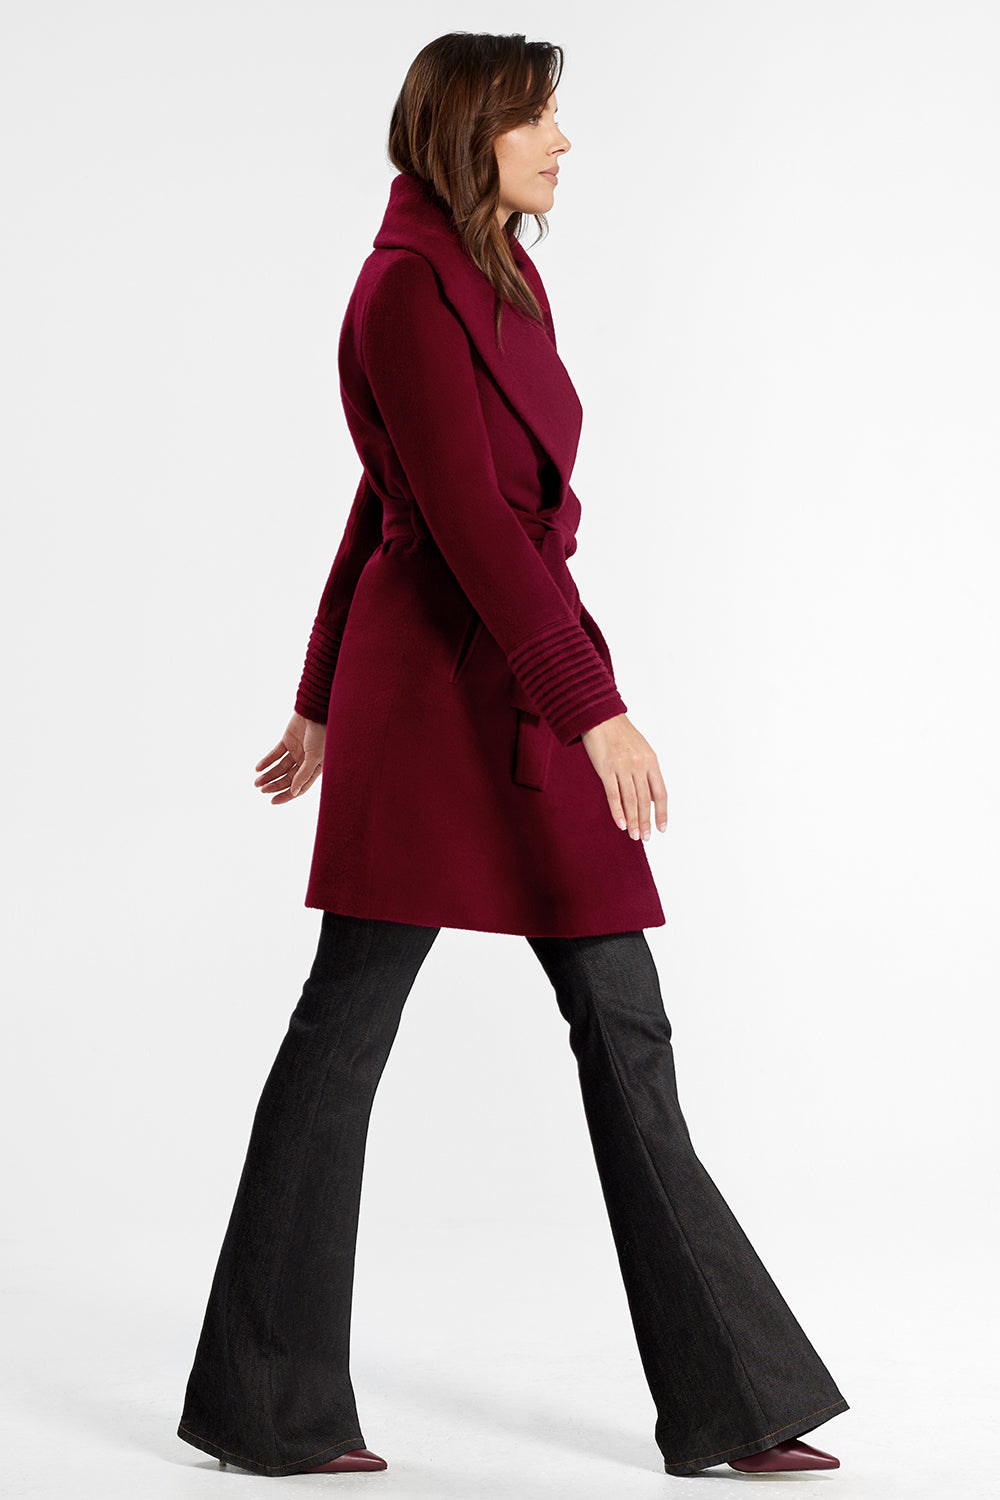 Sentaler Mid Length Shawl Collar Wrap Coat featured in Baby Alpaca and available in Garnet Red. Seen from side.